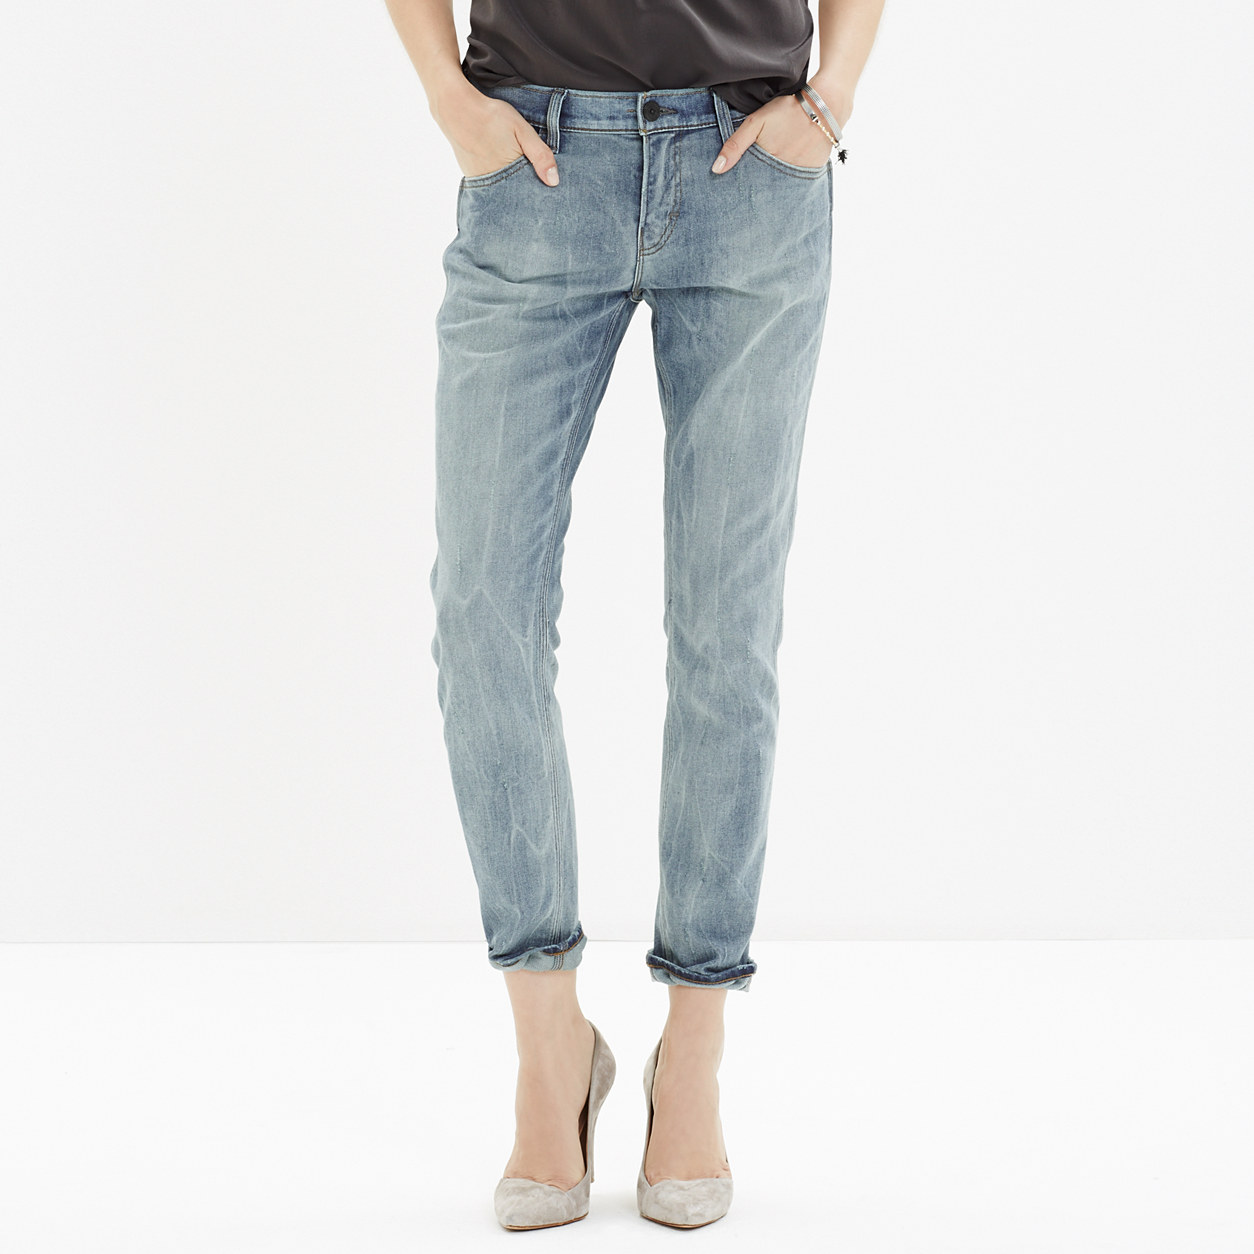 SkarGorn™ Thorn Slim Slouch Jeans : SALE | Madewell